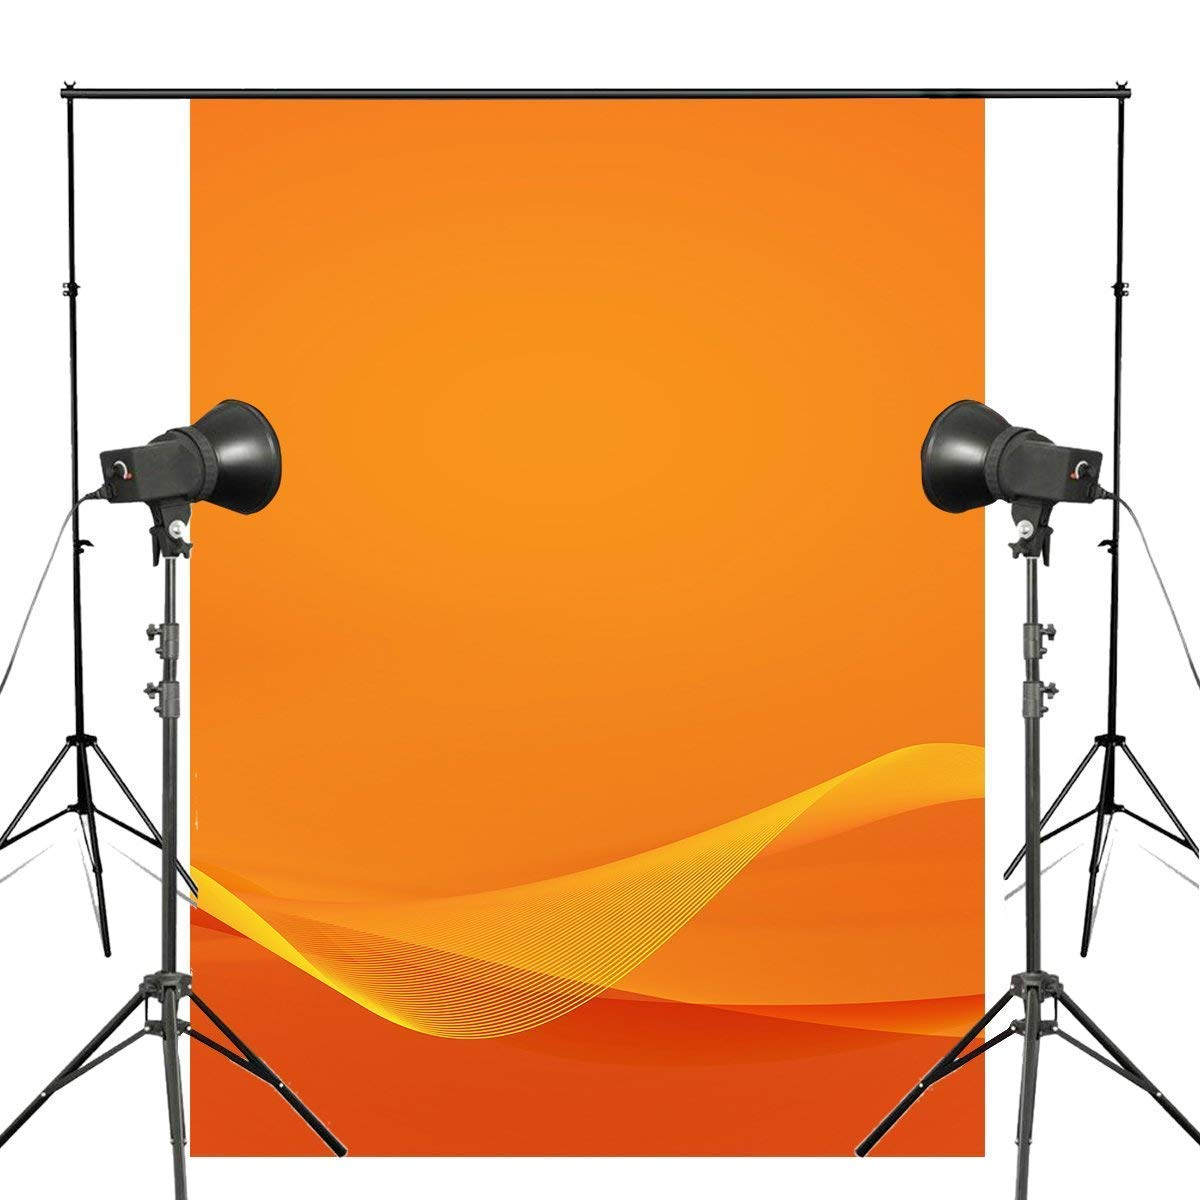 ERTIANANG Abstract 3D Stereoscopic Photography Background Orange Backdrop Art Photo Studio Backdrop Props Wall 5x7ft